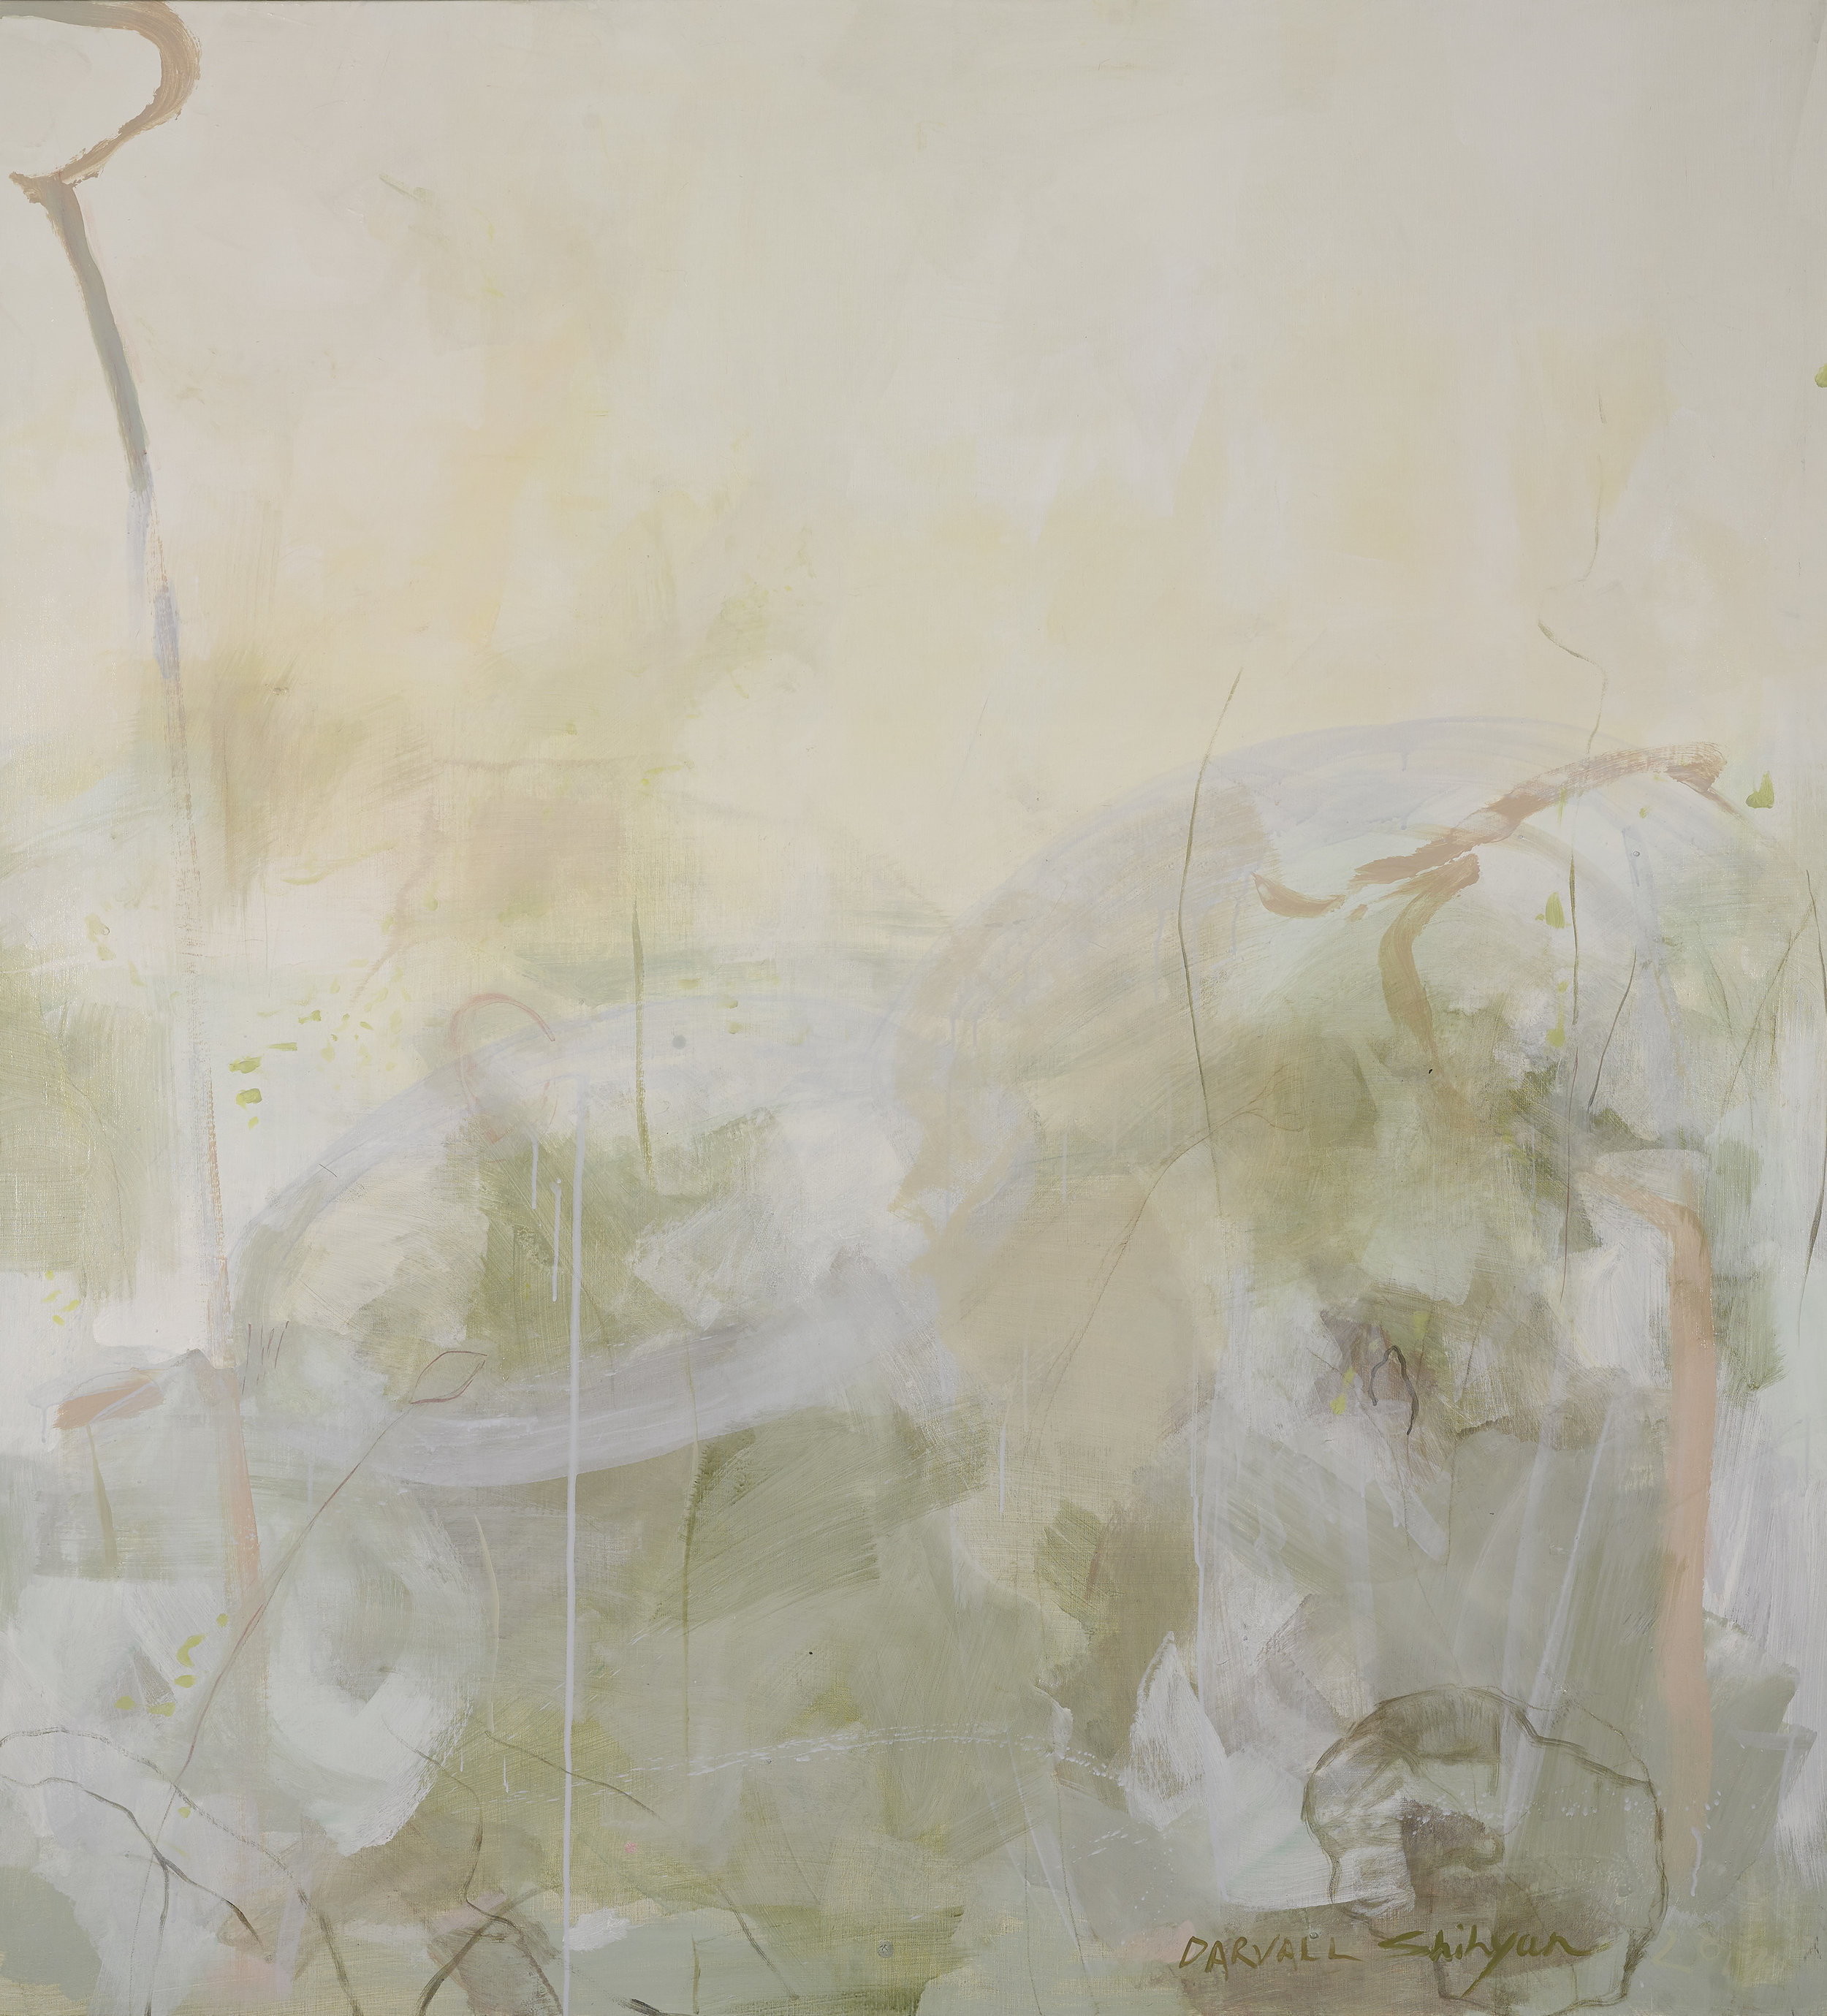 Lotus #1 Jo Darvall and Yeo Shih Yun 2017  155 x 171 cm pigment and acrylic on linen  enquiries contact Art Forum